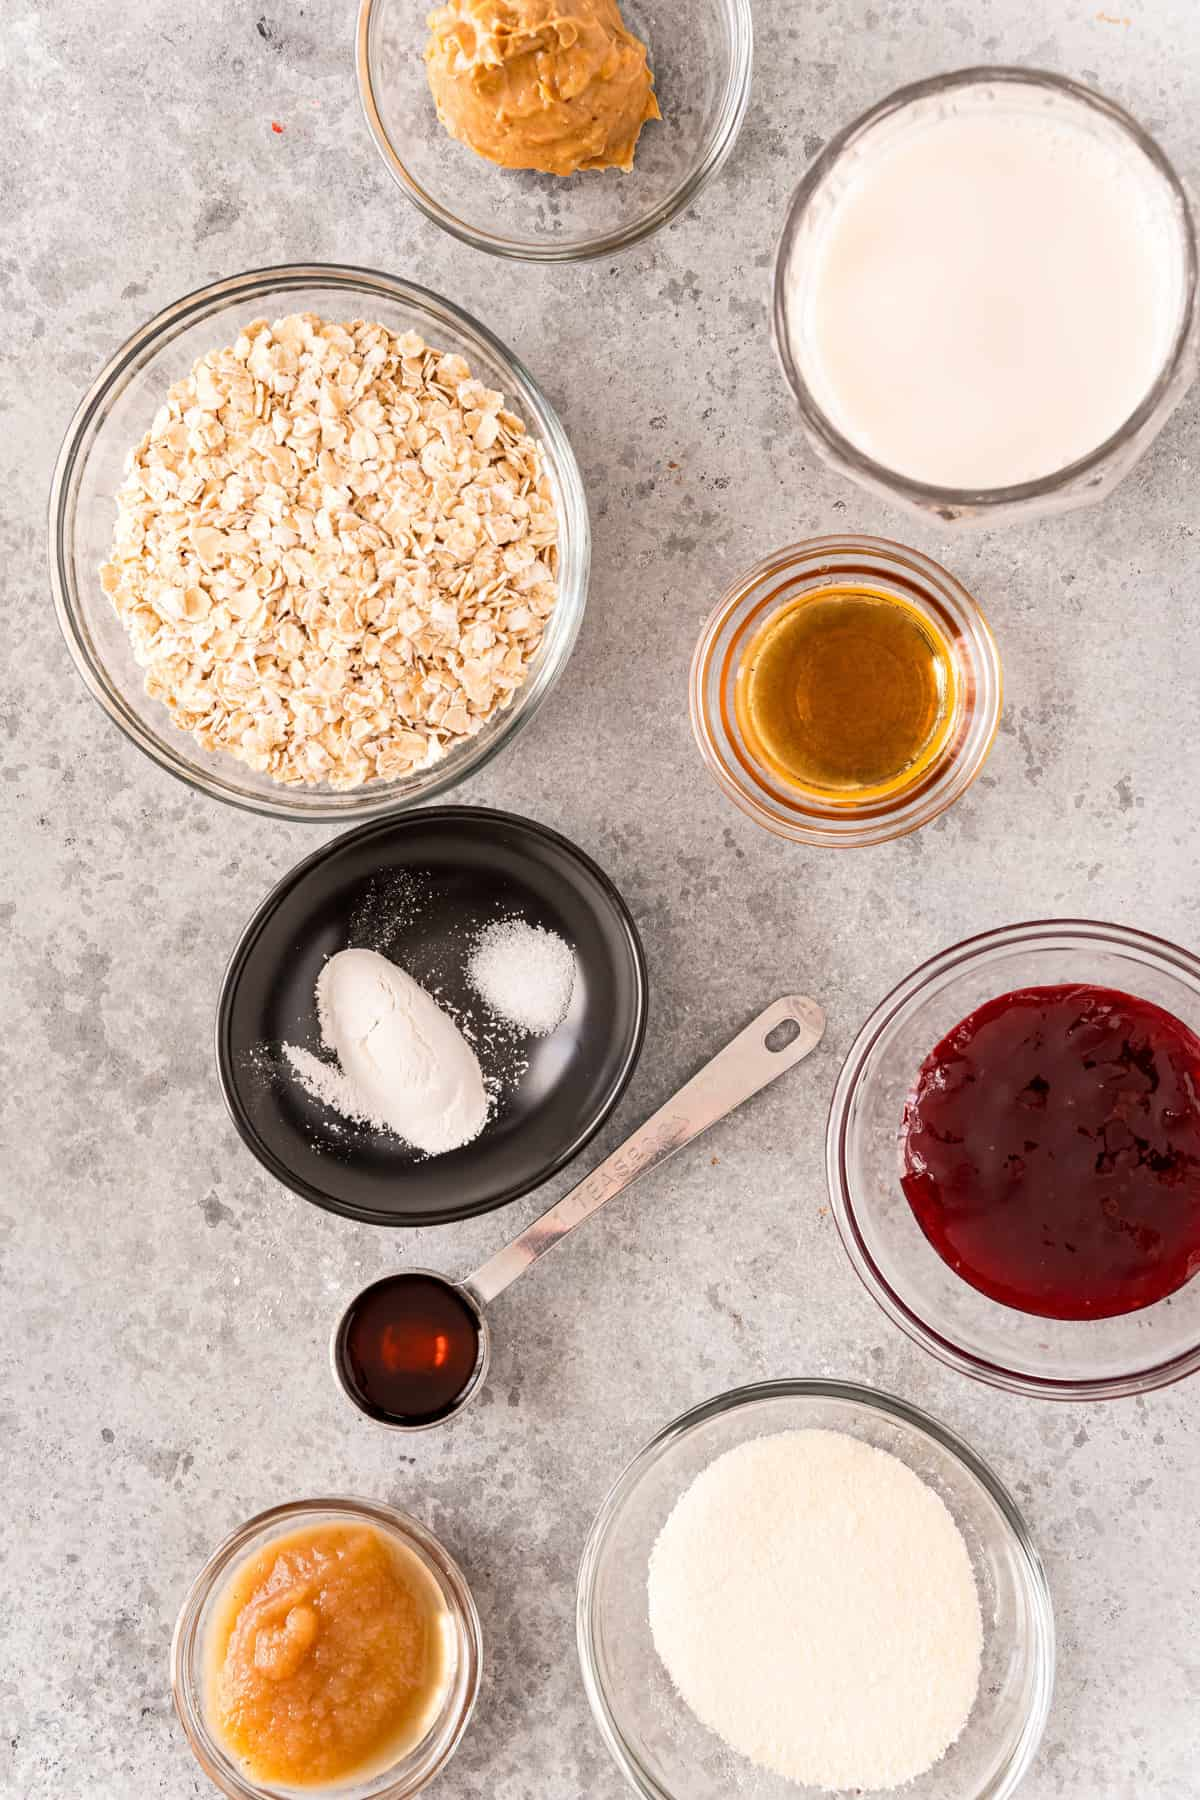 Ingredients need to make Baked Oats